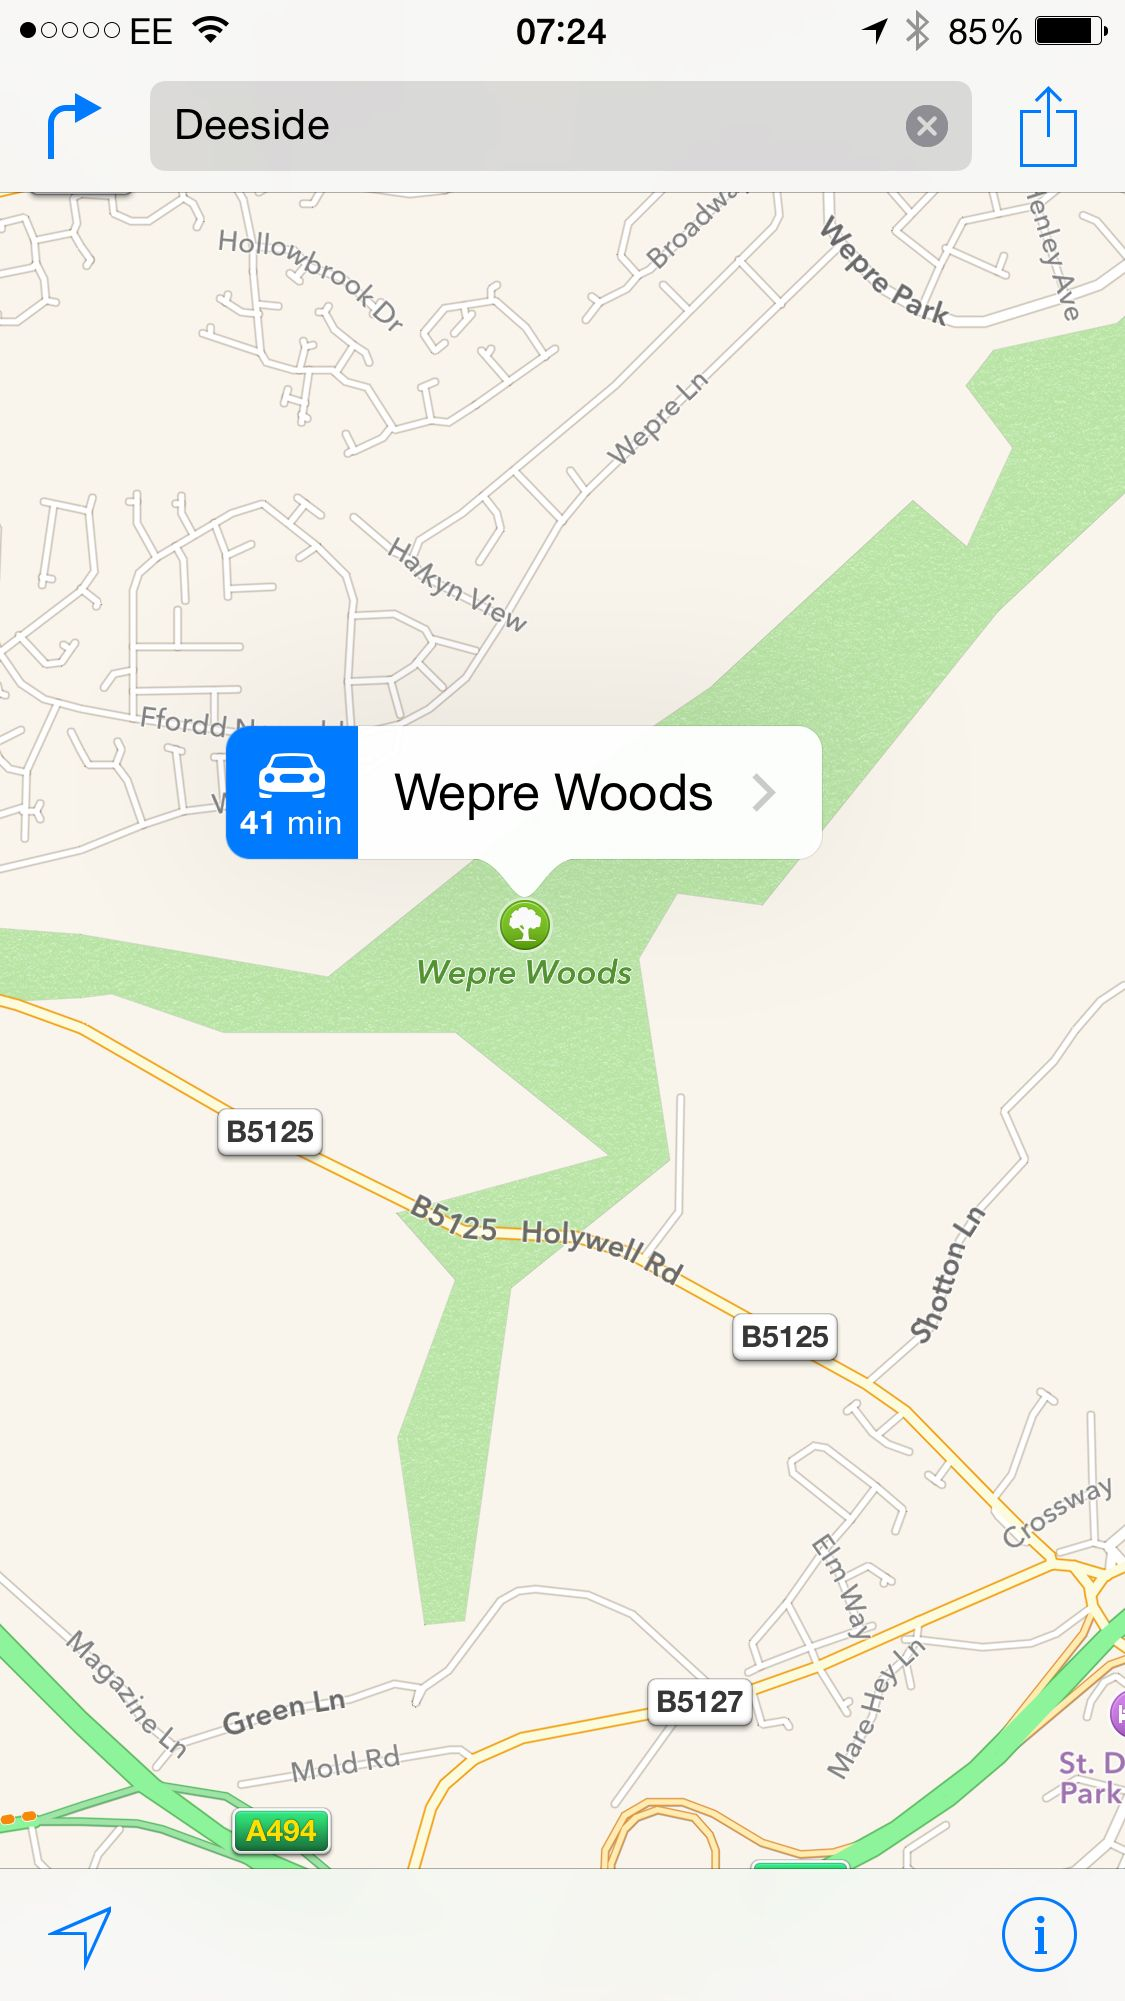 Wepre woods in deeside